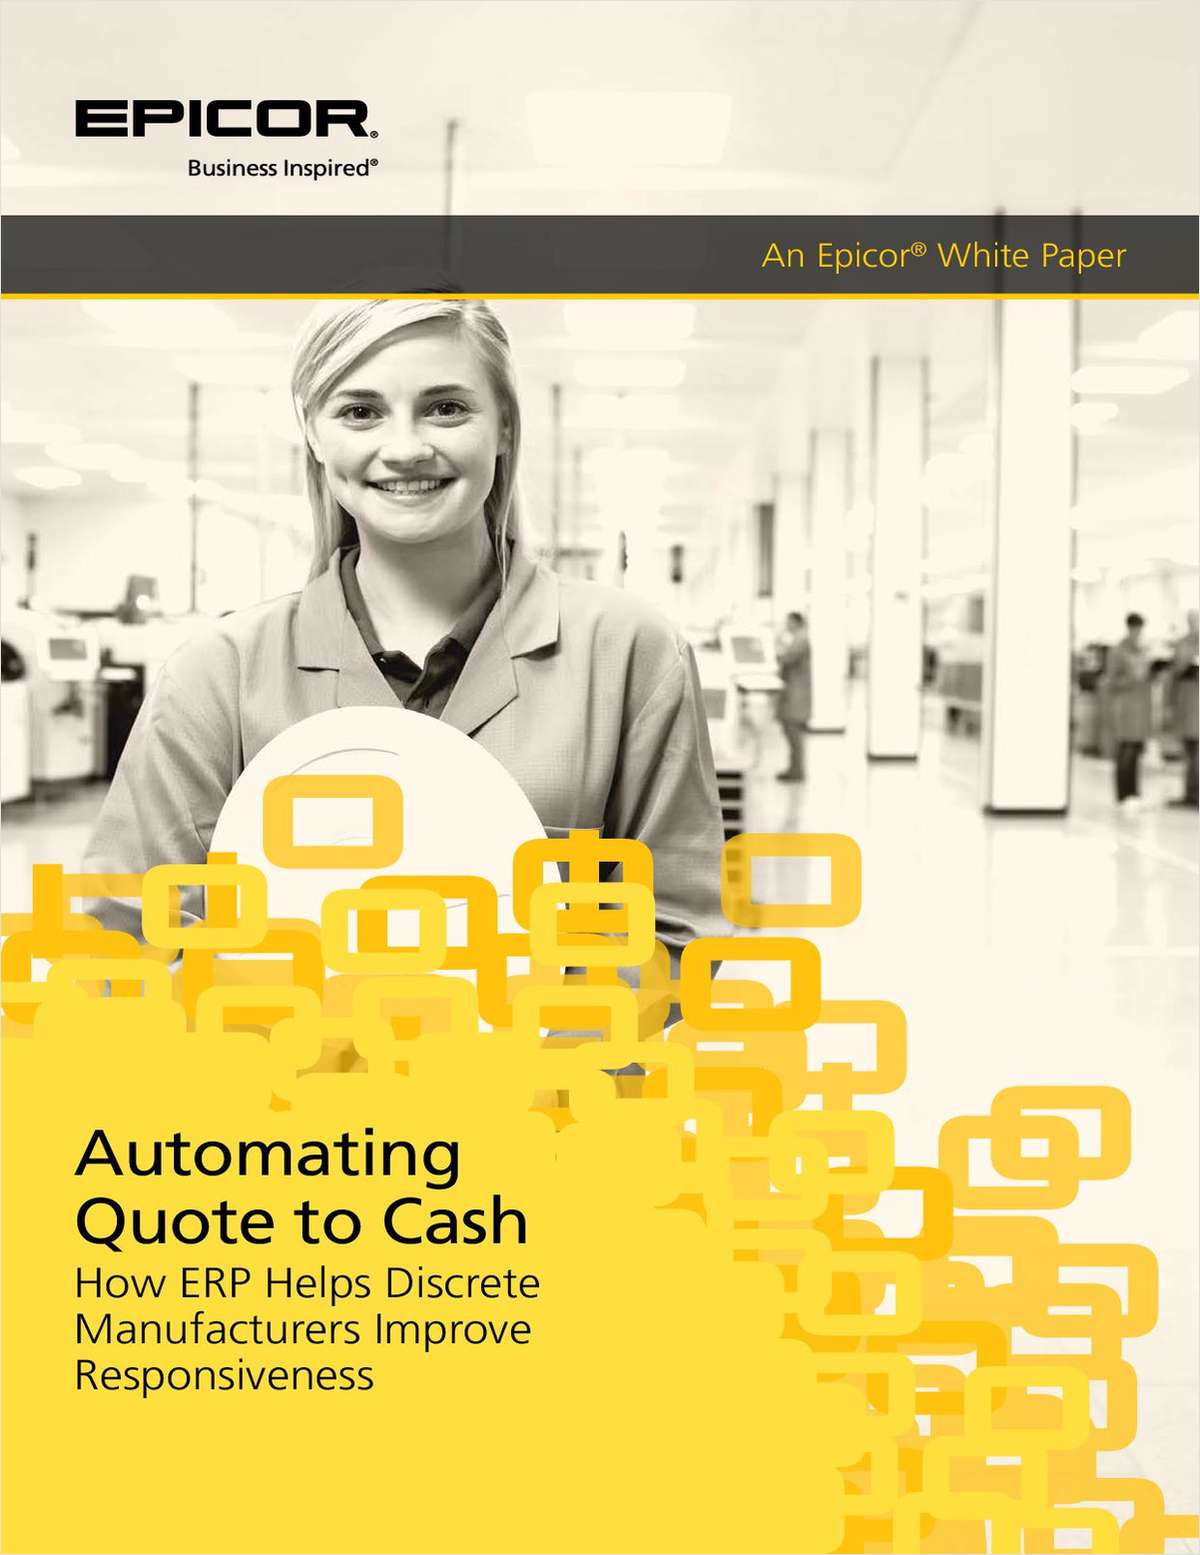 Automating Quote to Cash, How ERP Helps Discrete Manufacturers Improve Responsiveness